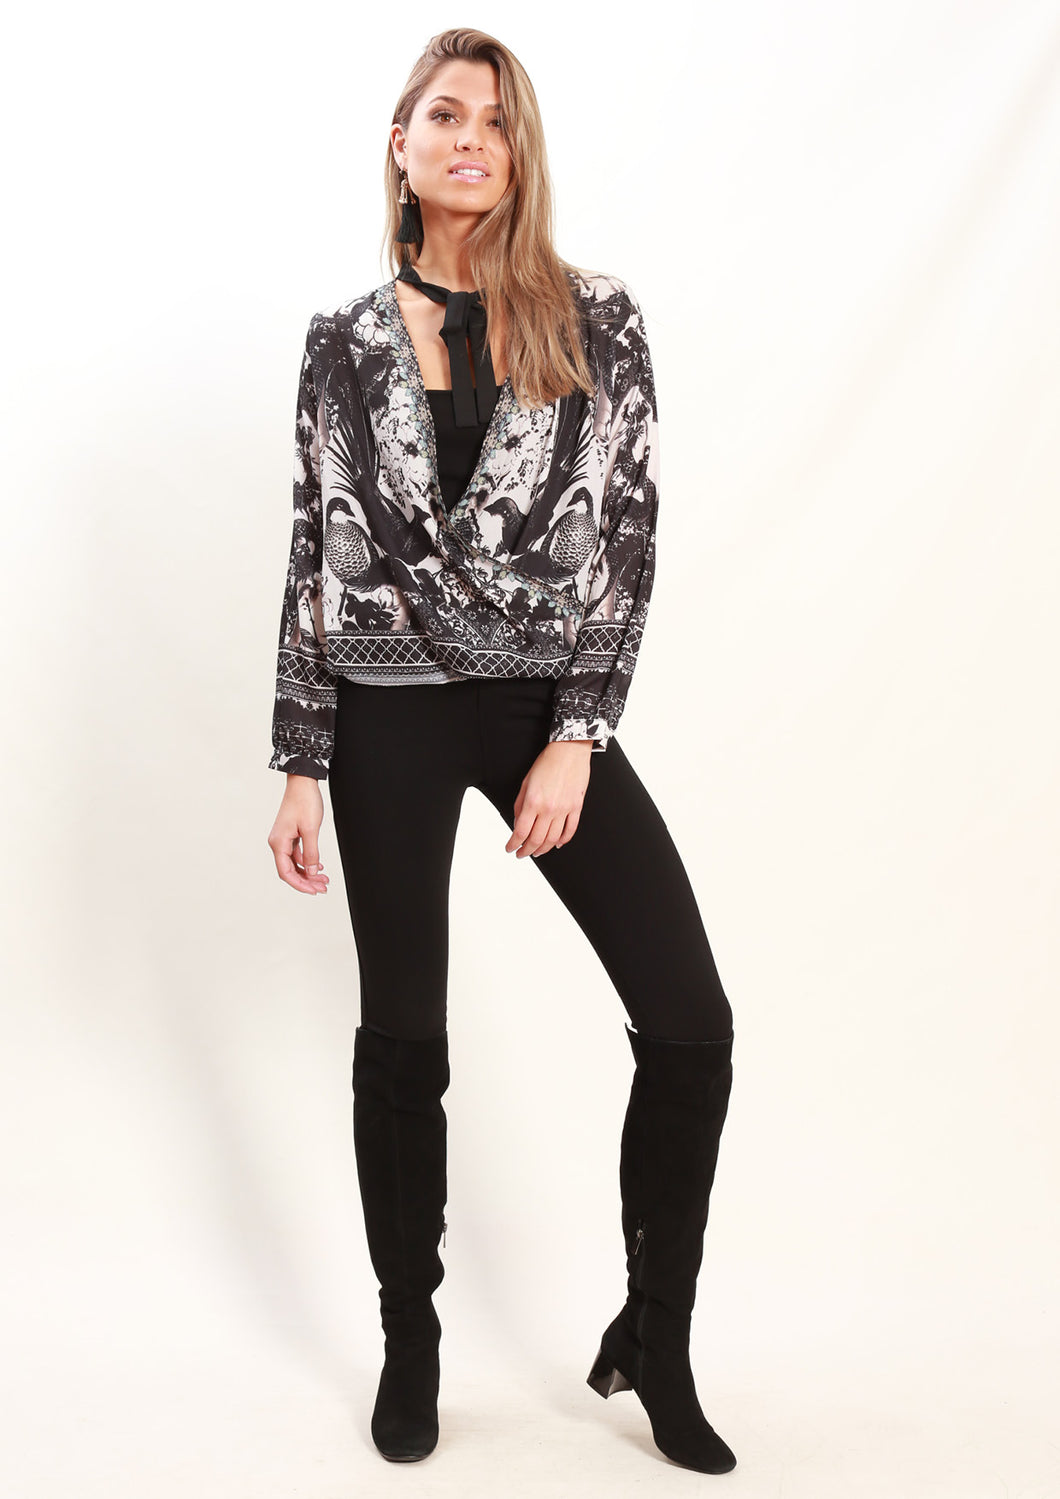 LV961-5SS Ink Painting Print Top (Pack)